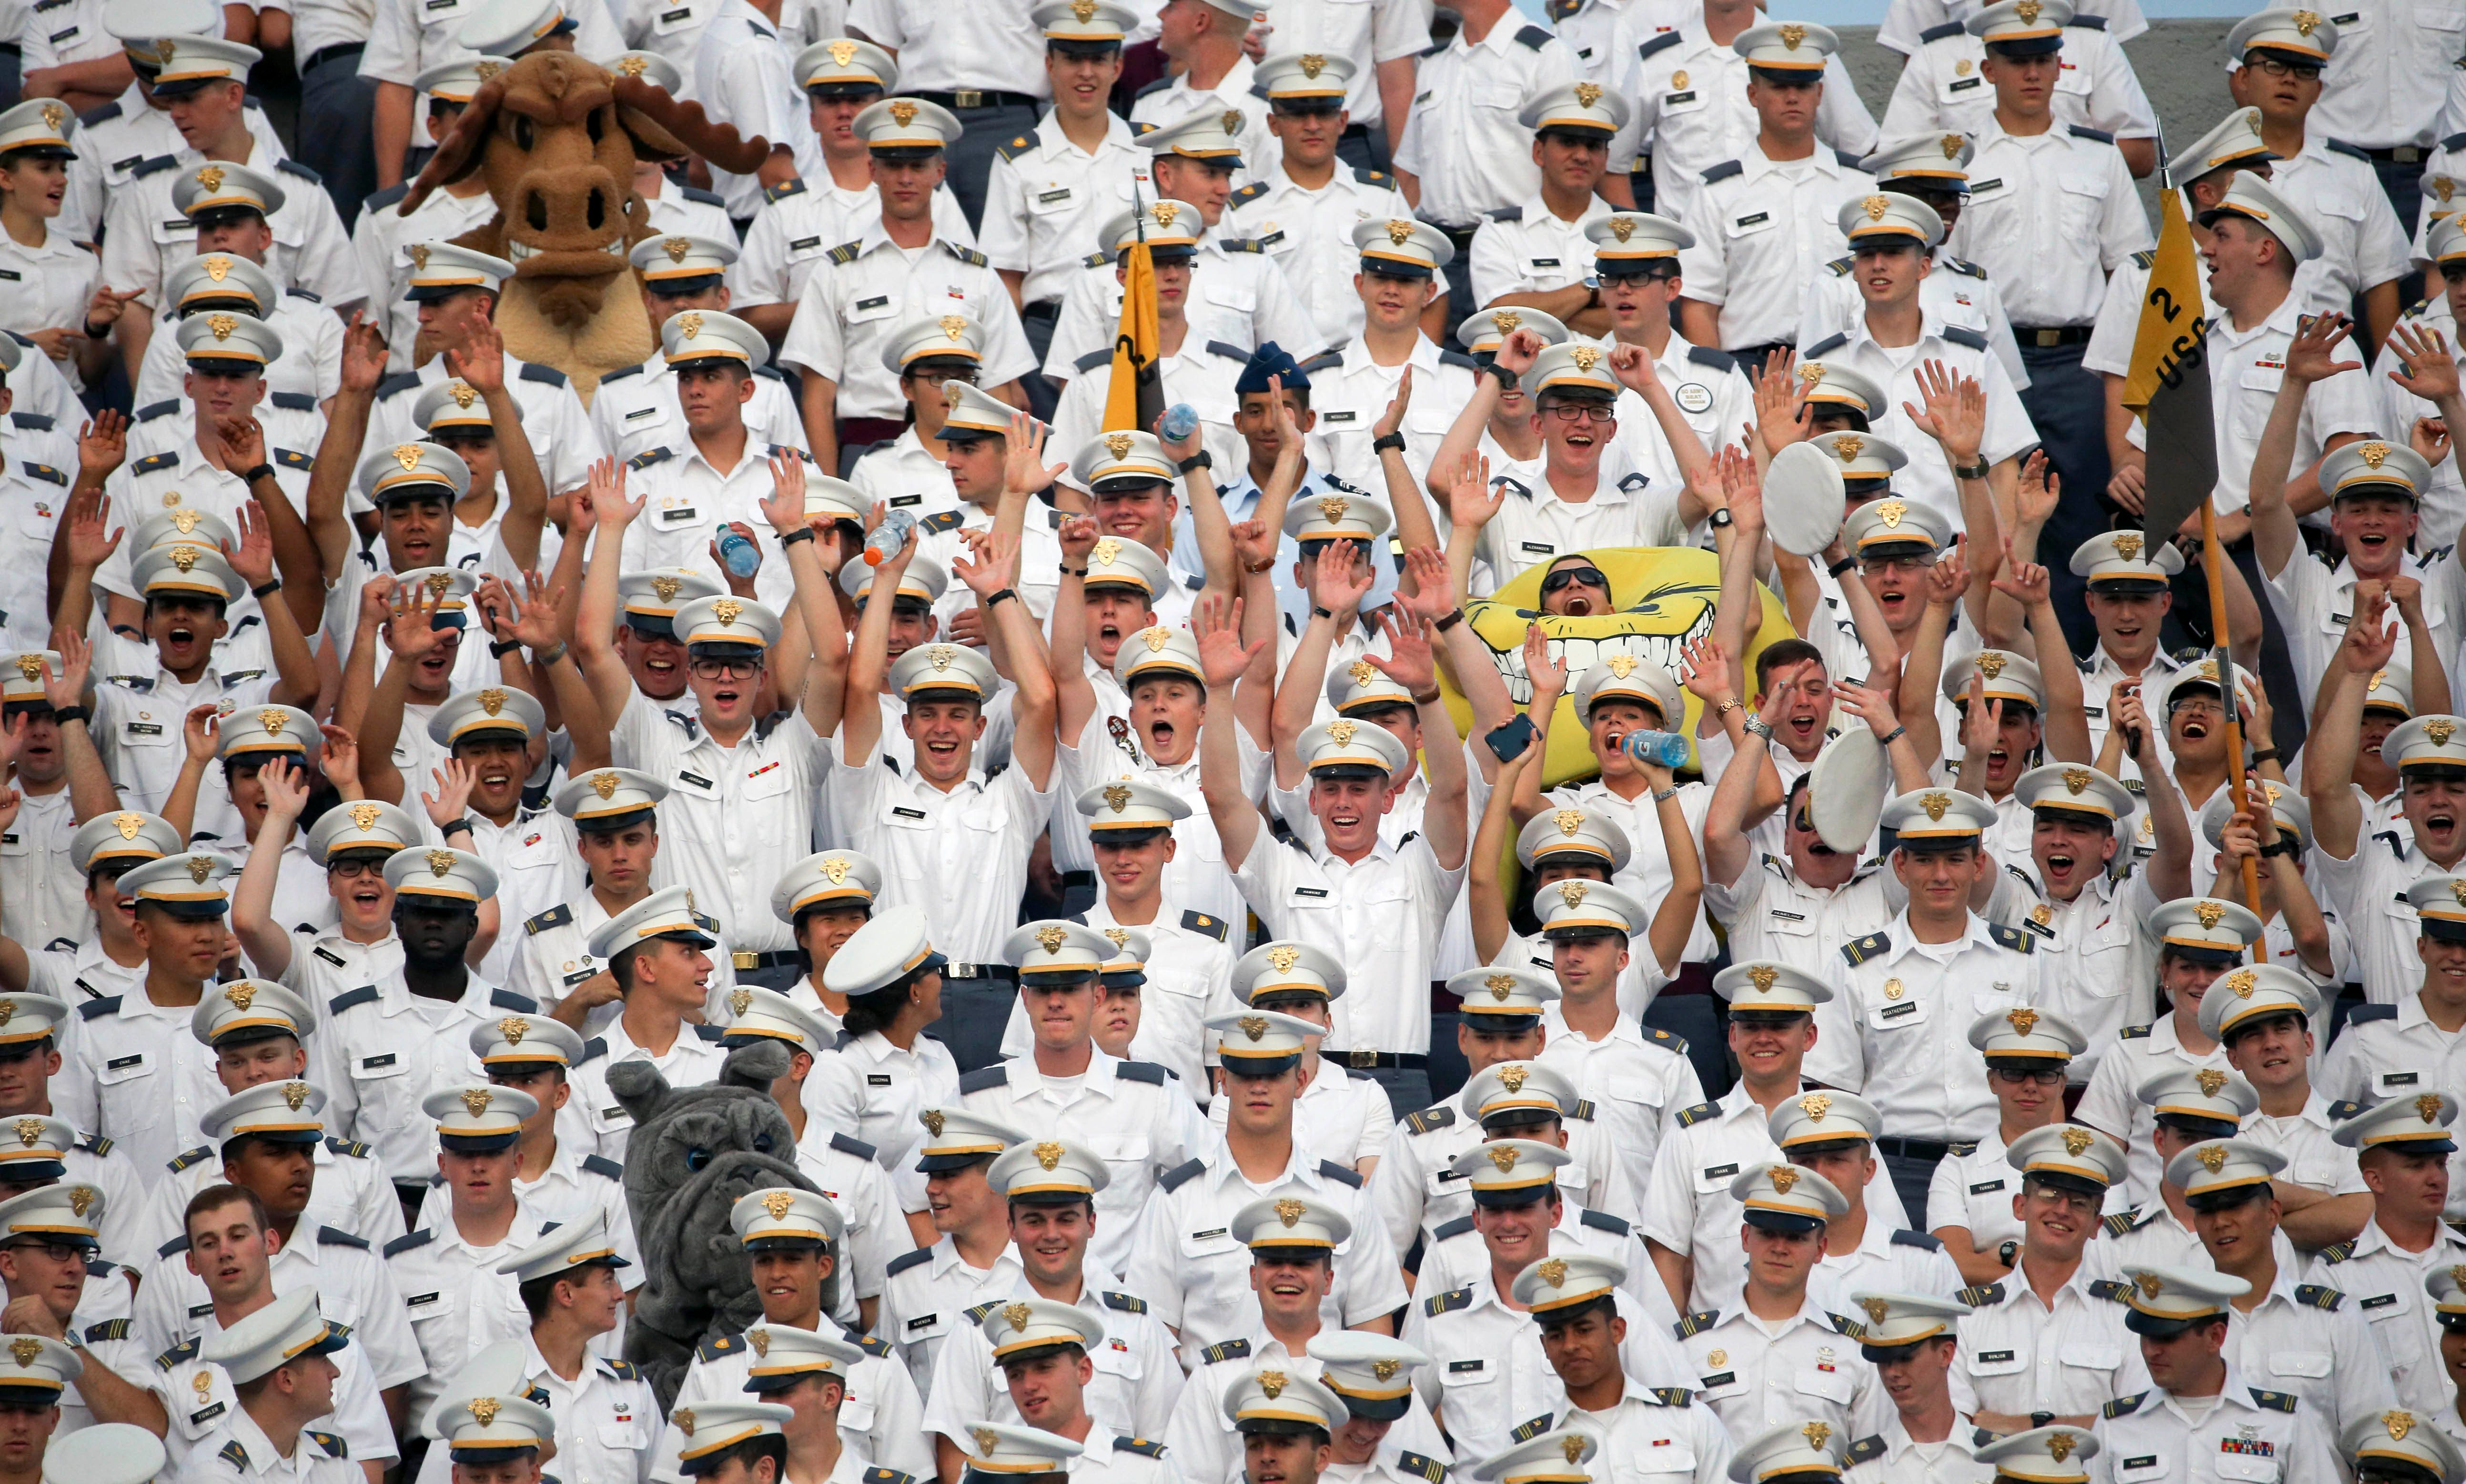 In this Friday, Sept. 4, 2015, photo, cadets cheer during the first half of an NCAA college football game between Army and Fordham in West Point, N.Y. More than a dozen students were injured during the annual pillow fight by first year cadets on Aug. 20, 2015, when some participants put hard objects inside their pillow cases, according to a story in the New York Times on Saturday, Sept. 5. (AP Photo/Mike Groll)